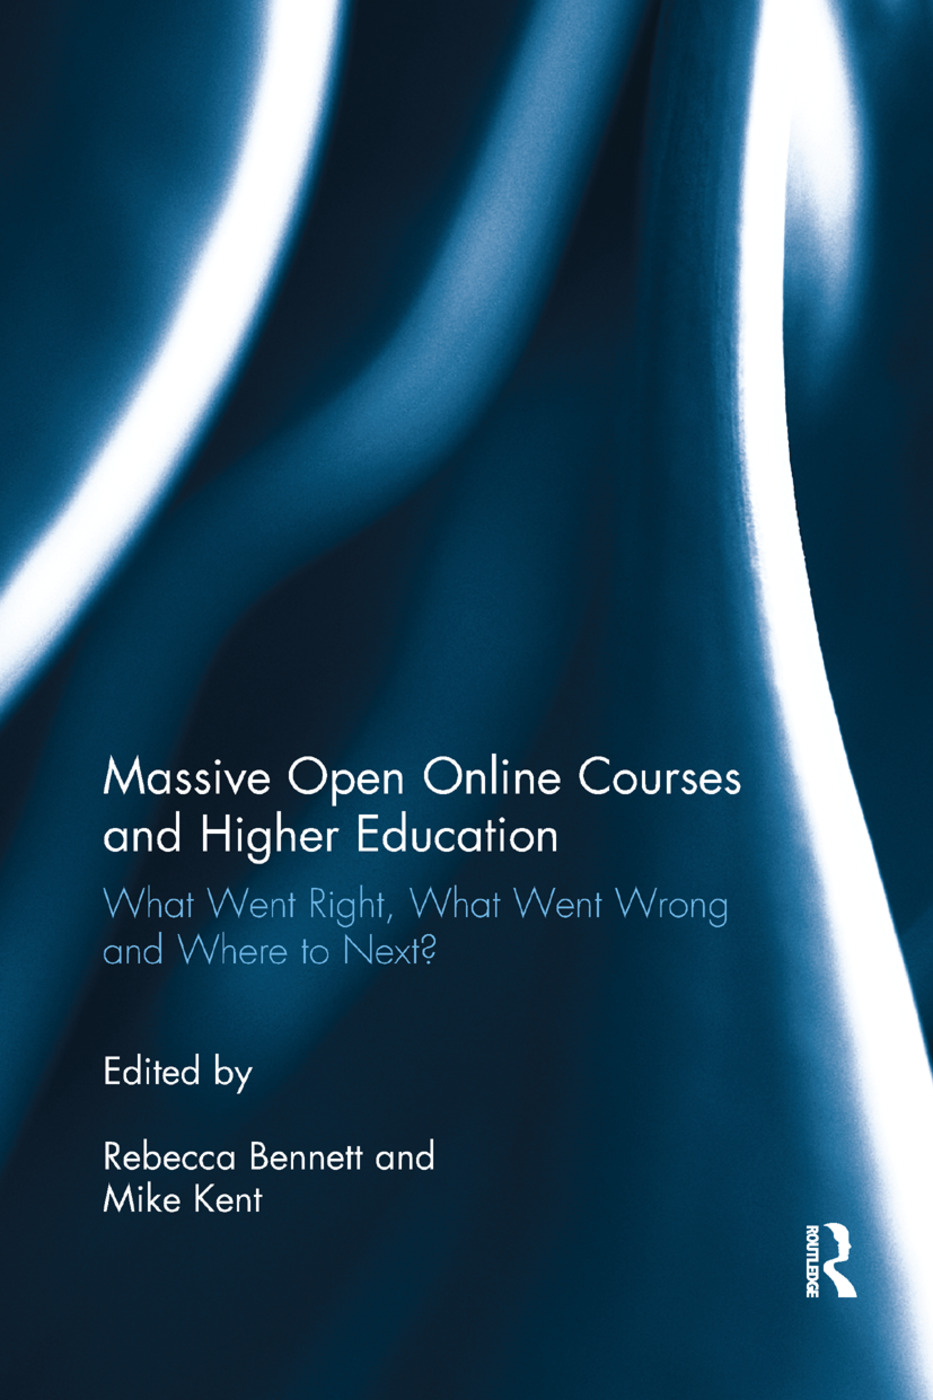 Massive Open Online Courses and Higher Education: What Went Right, What Went Wrong and Where to Next? book cover